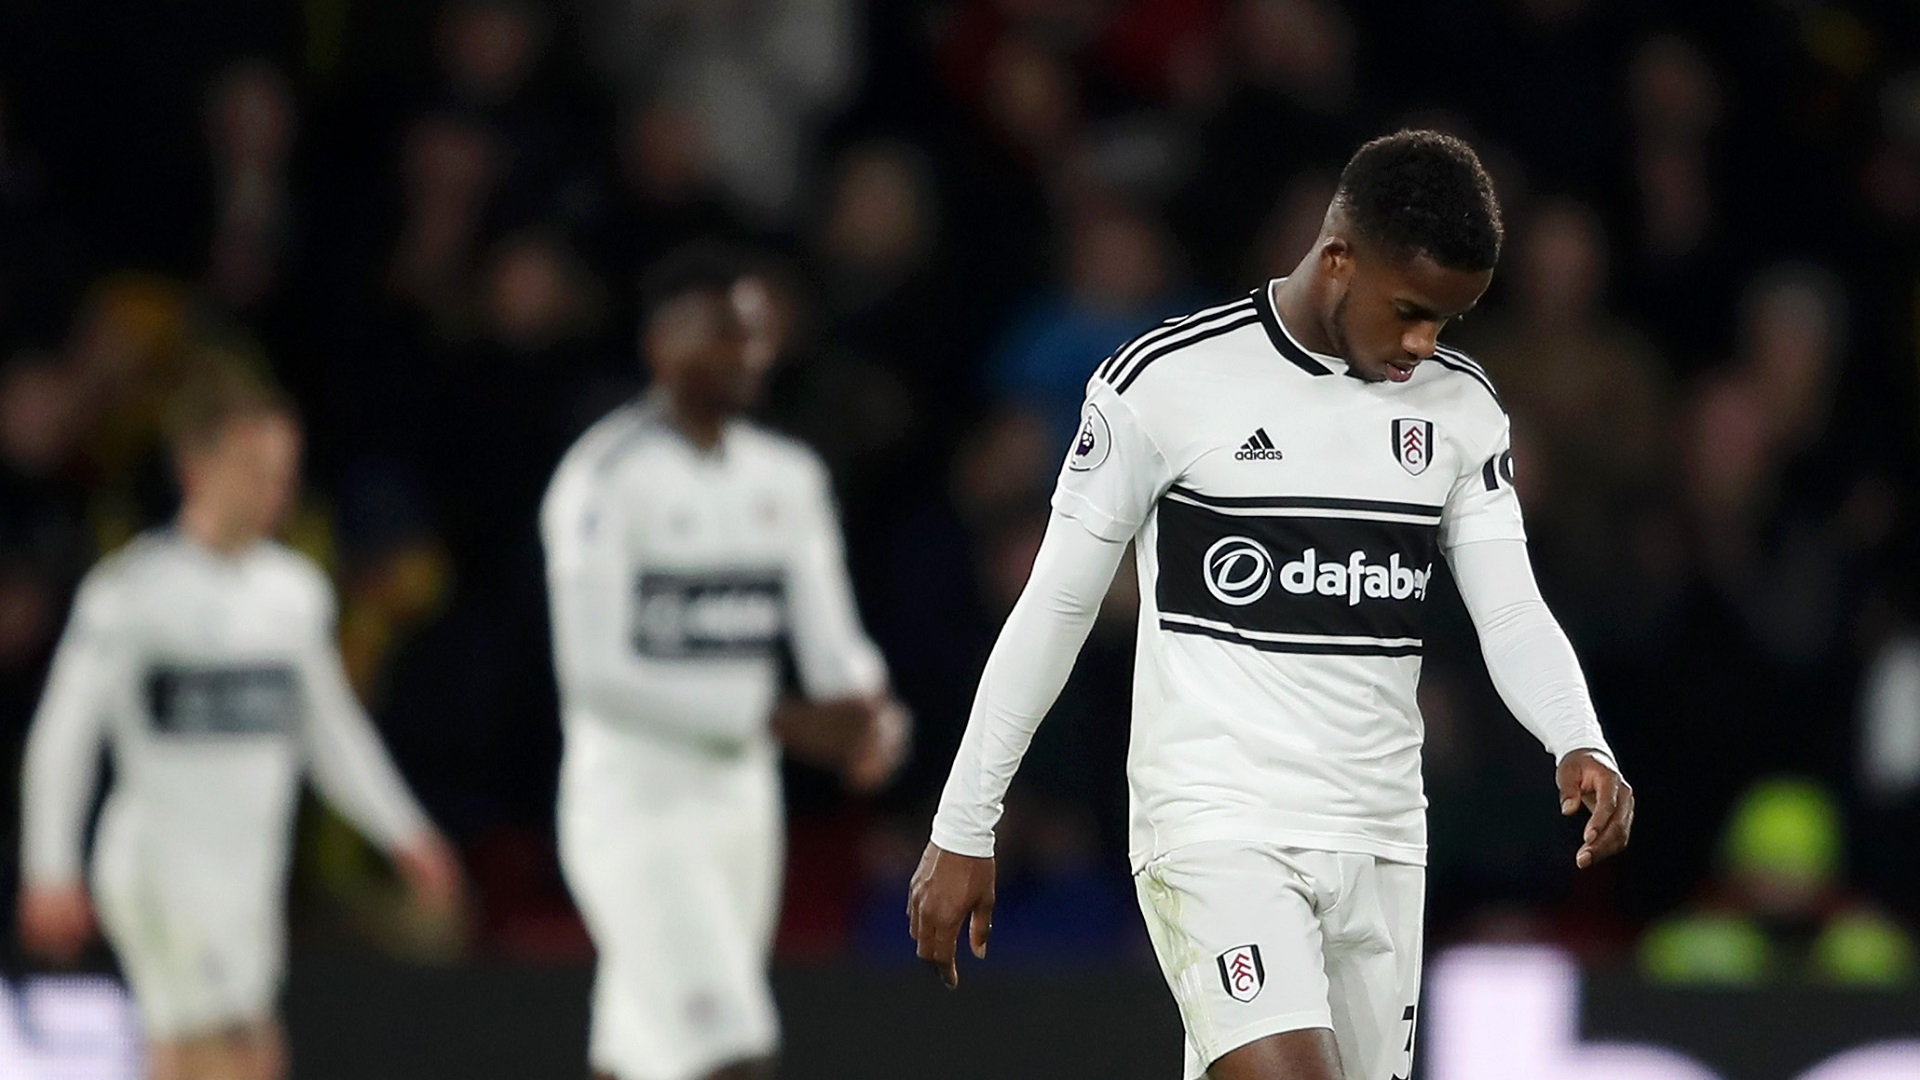 Watford vs Fulham: Cottagers relegated after 4-1 demolition at Vicarage Road